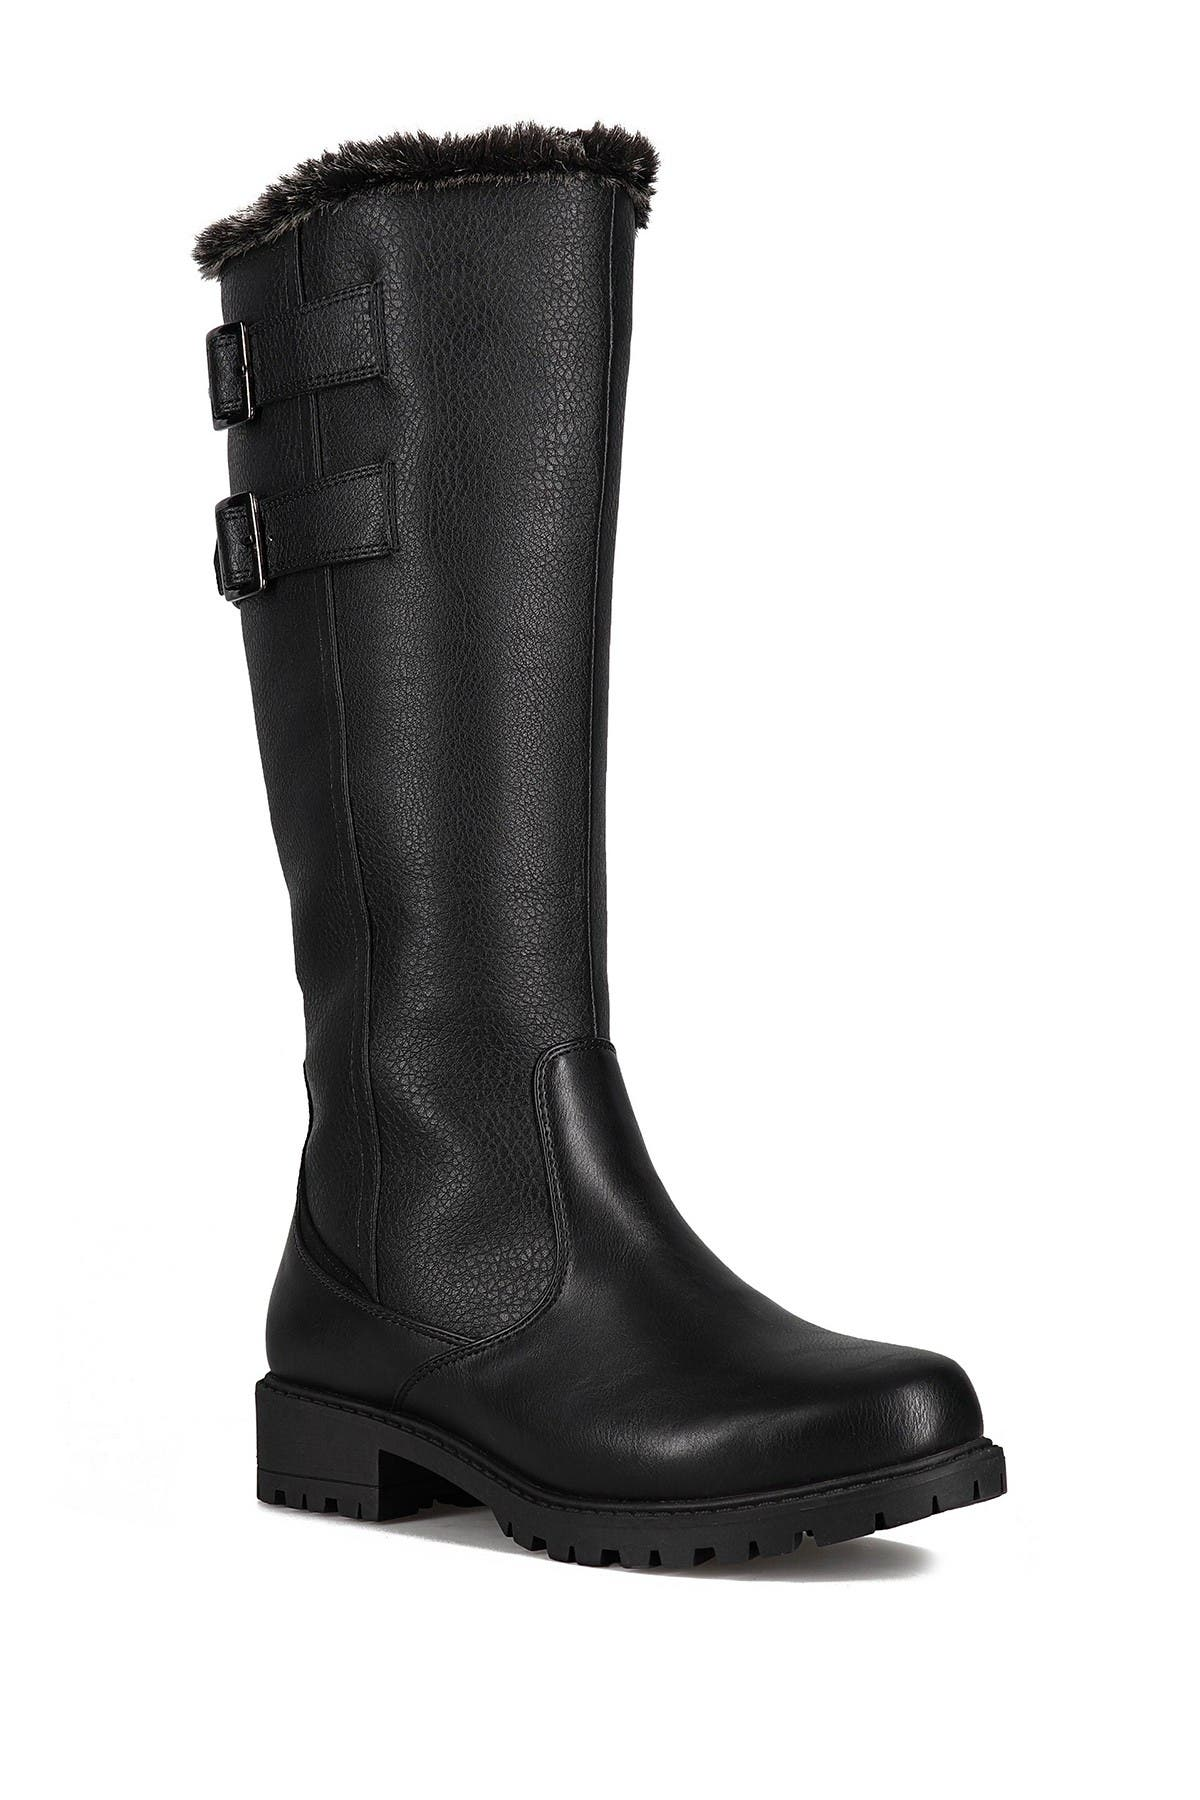 Image of Aquatherm by Santana Canada Poppy Waterproof Faux Fur Tall Snow Boot